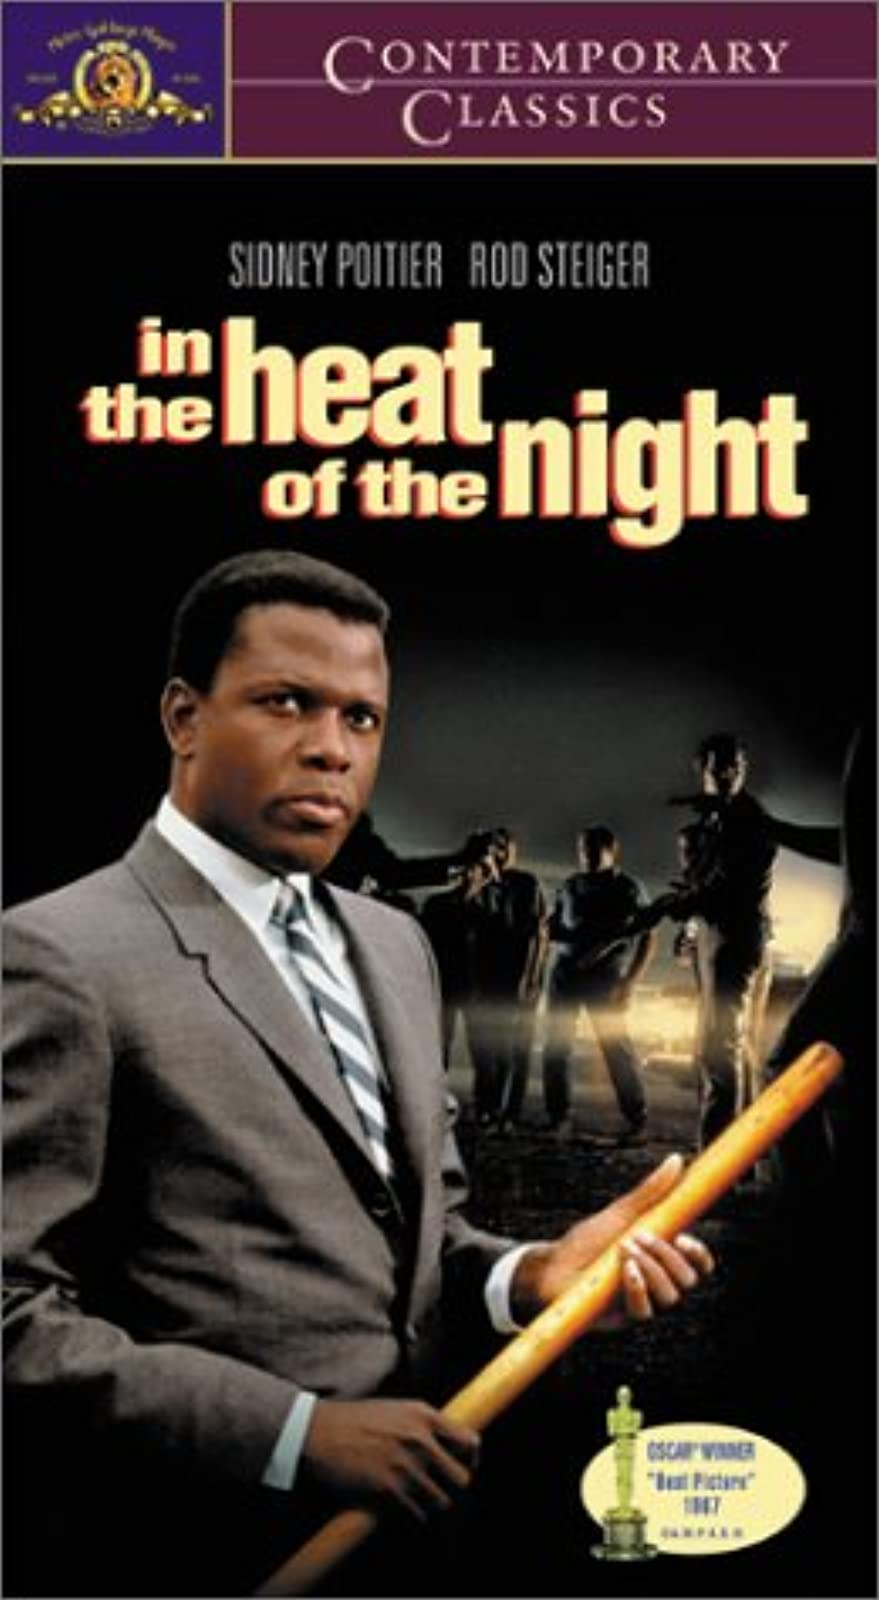 In The Heat Of The Night VHS On VHS With Sidney Poitier